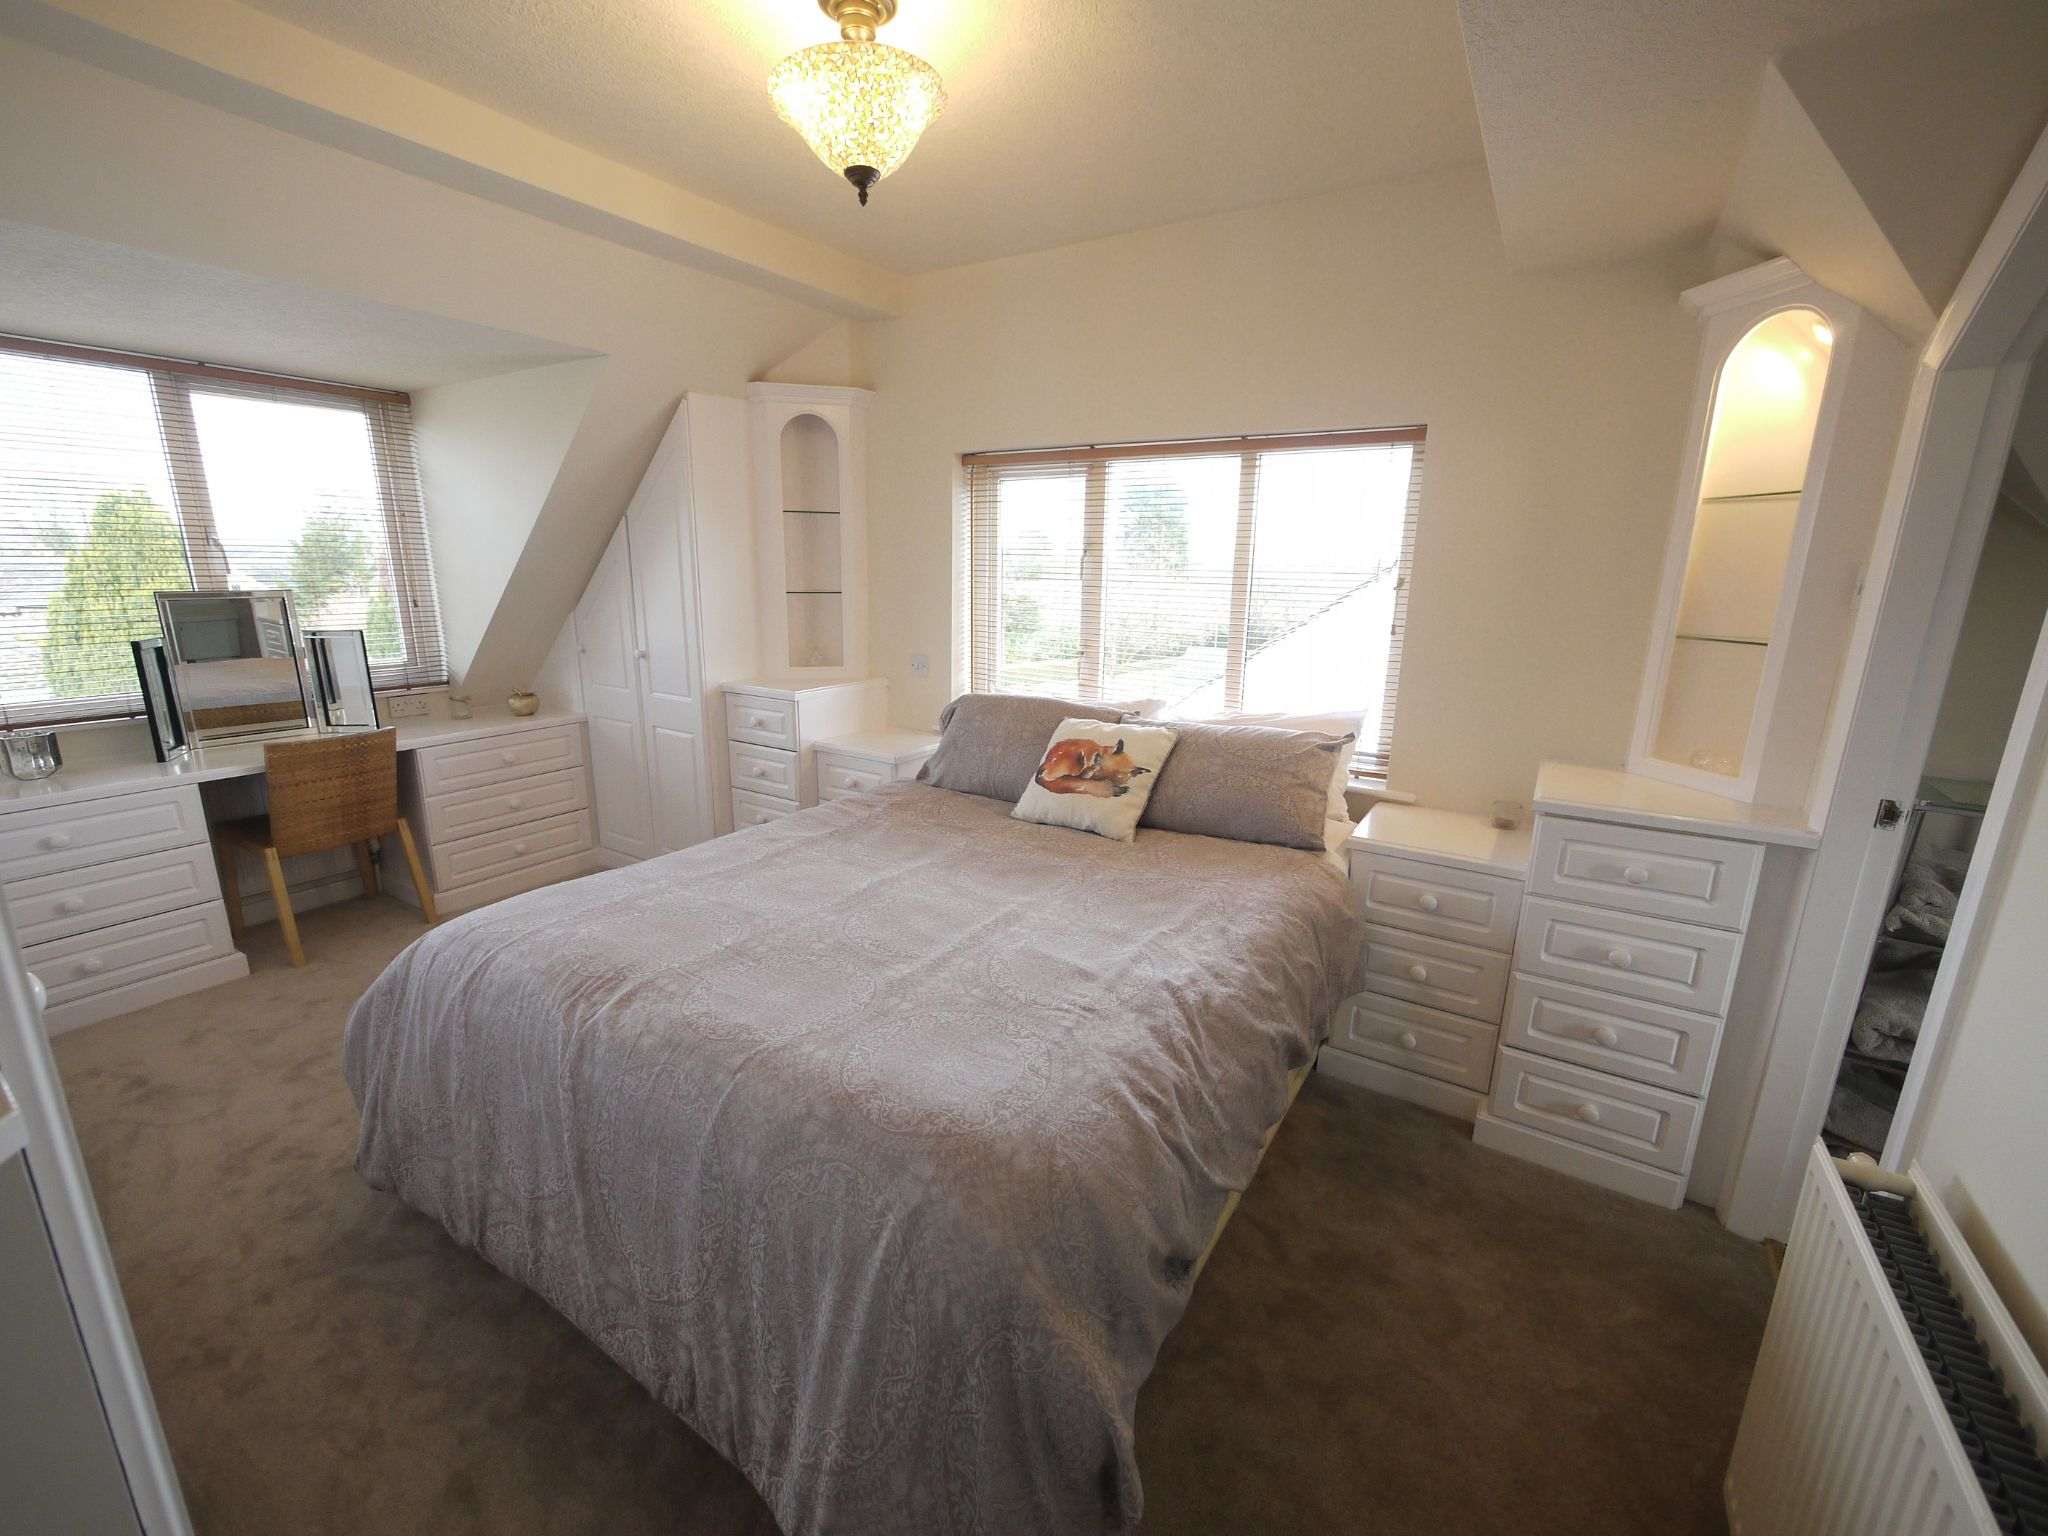 5 bedroom detached bungalow For Sale in Brighouse - master bed2.